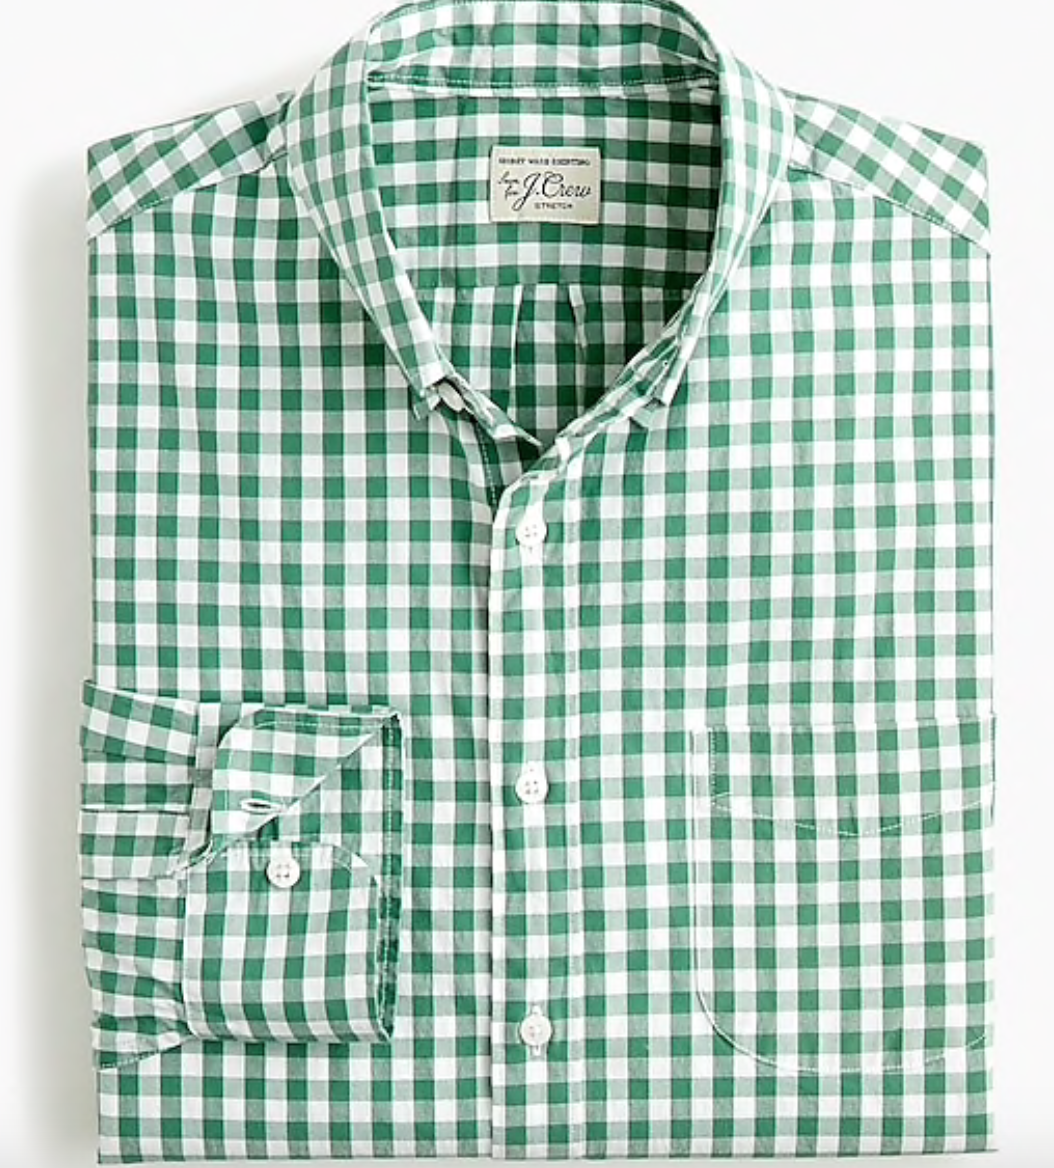 J. Crew Mens Stretch Secret Wash Shirt -